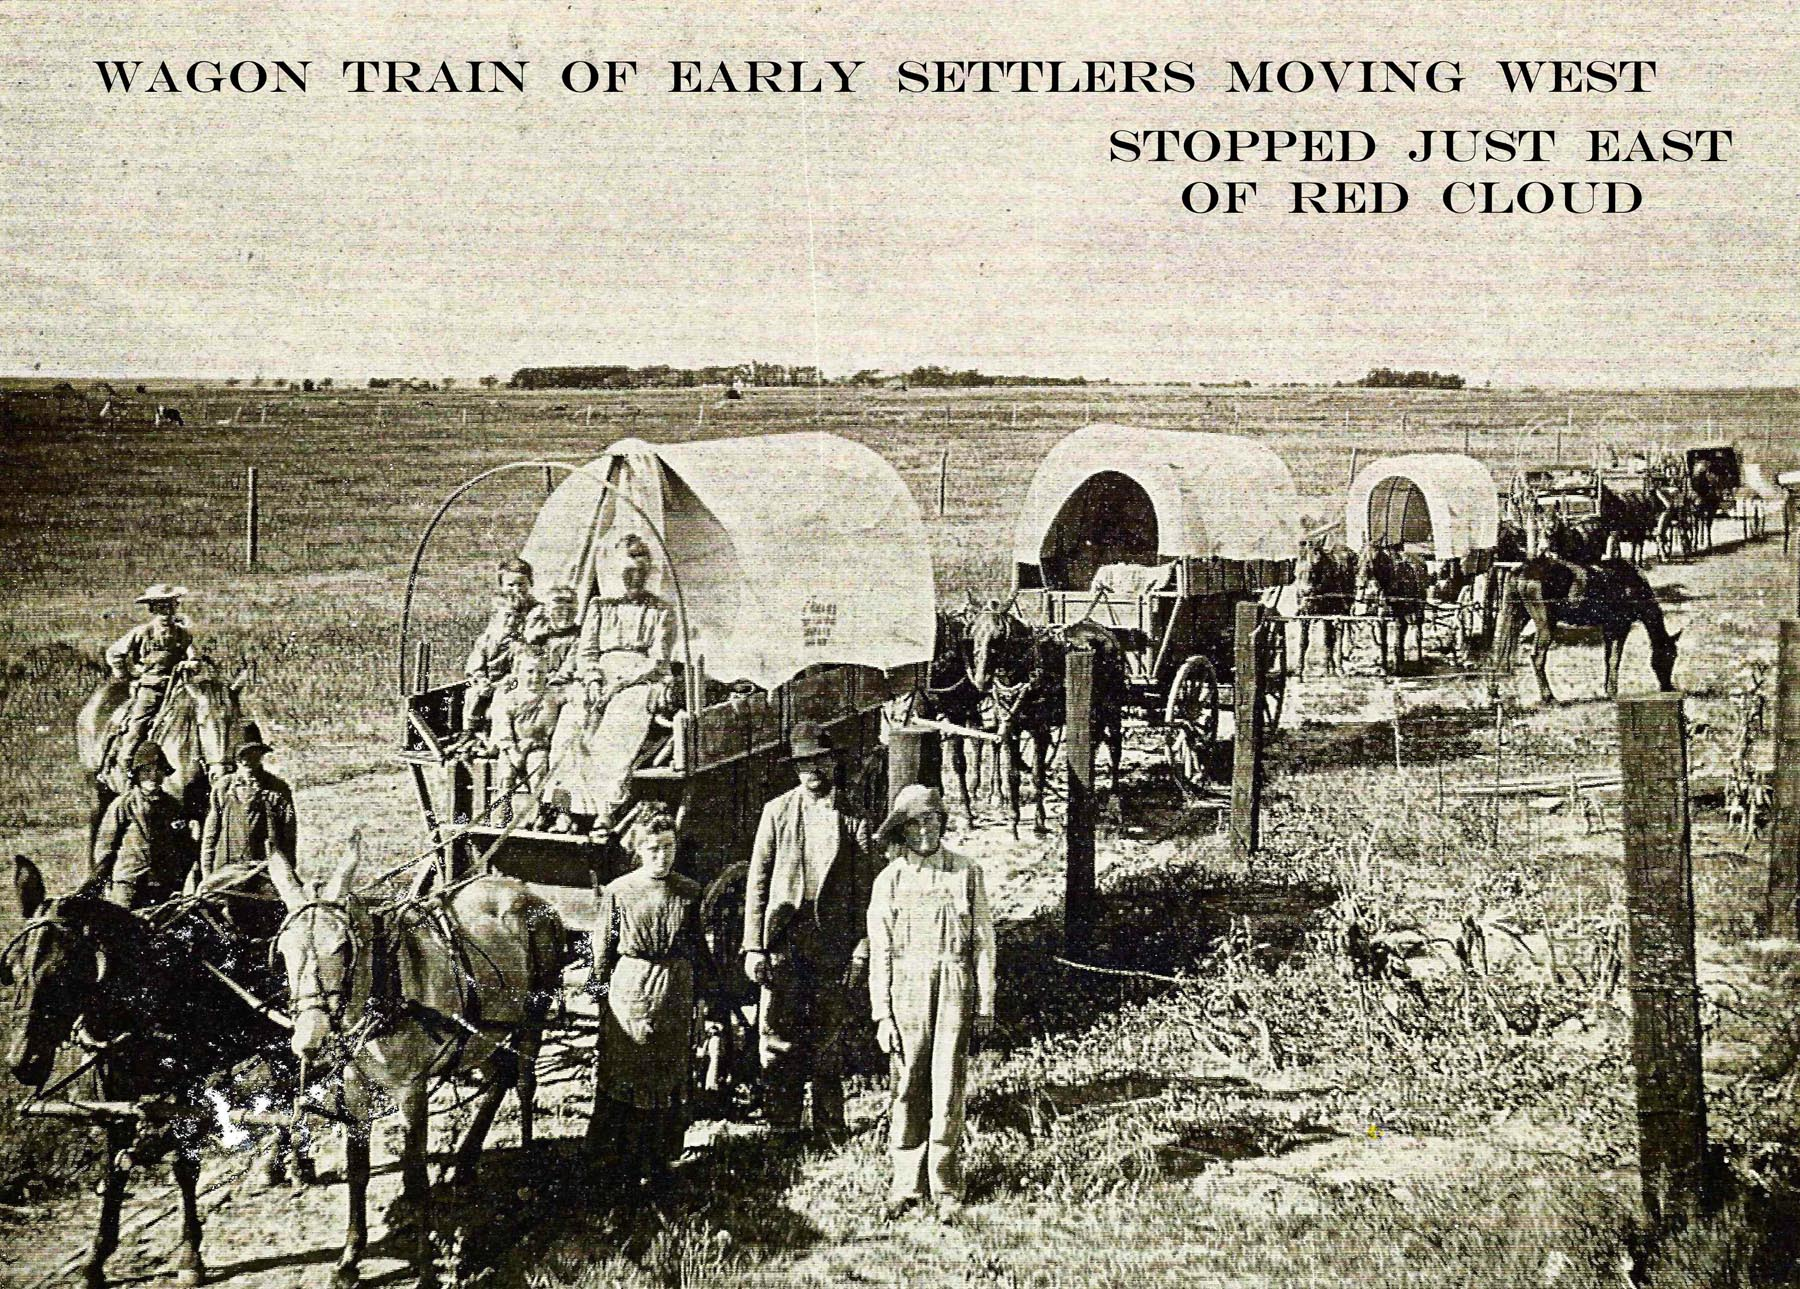 WAGON TRAIN OF EARLY SETTLERS